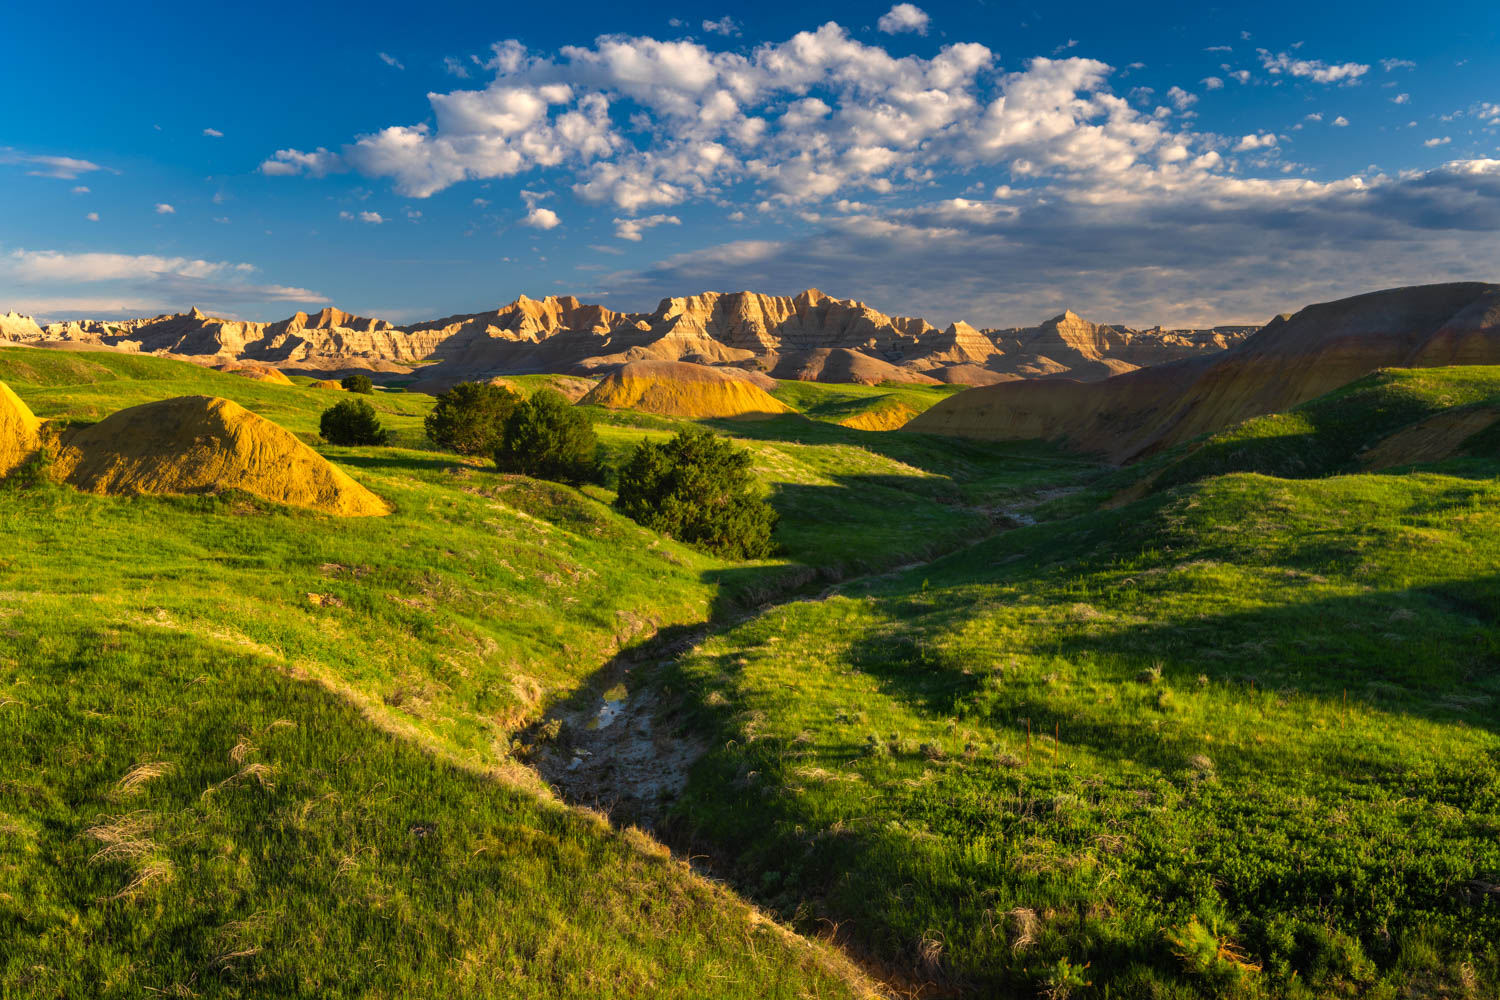 The lush and green grasslands of the Badlands prairie captured in late May in Badlands National Park, South Dakota.